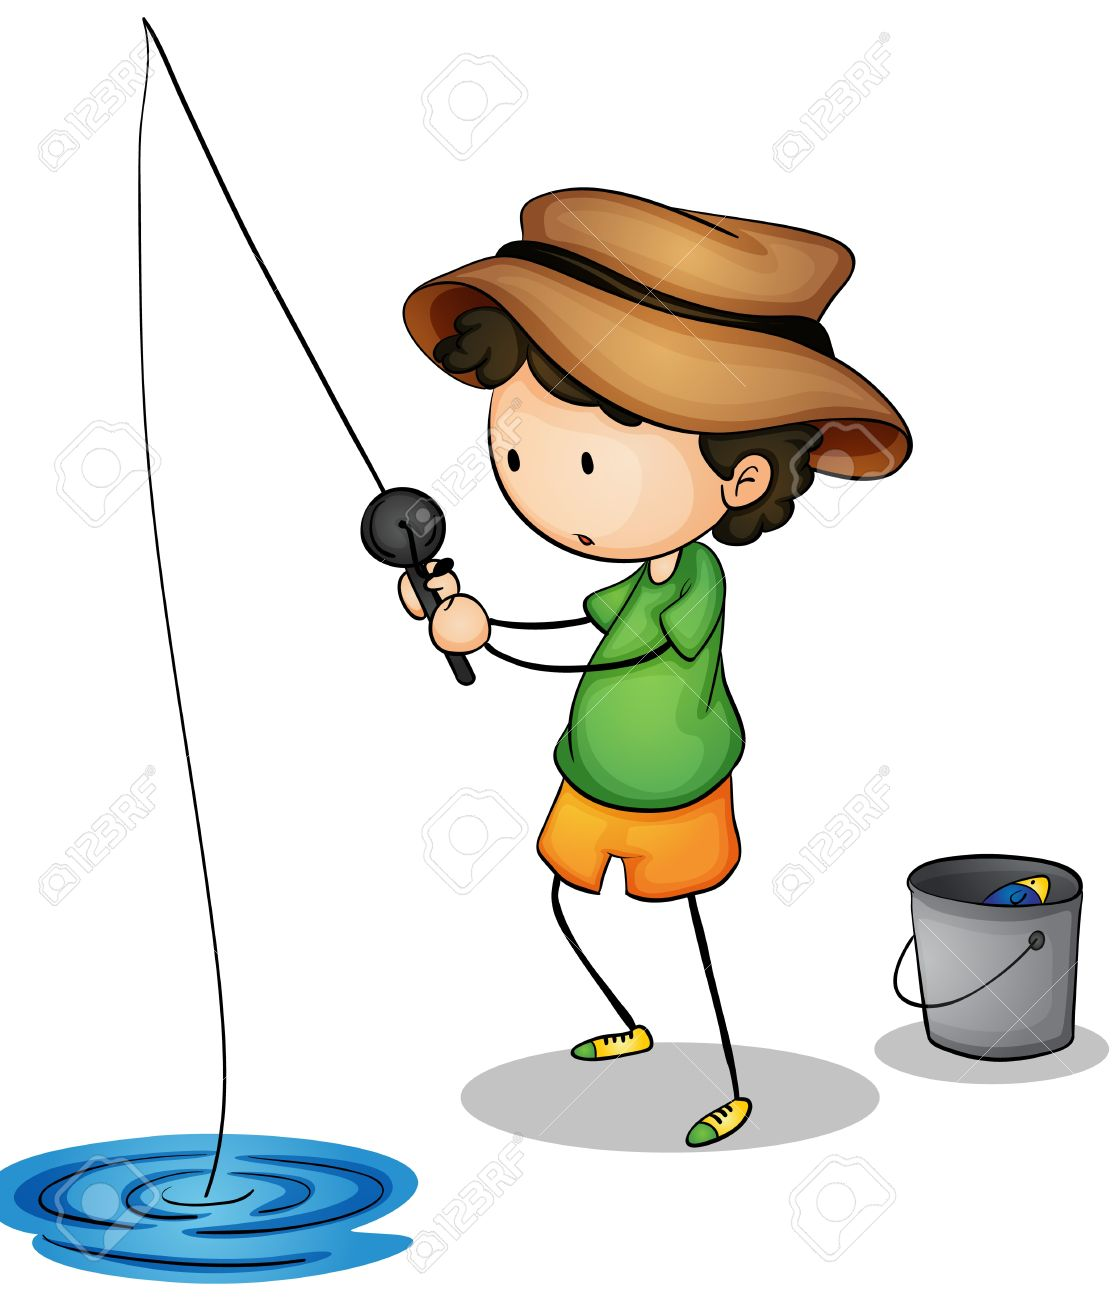 Illustration of a young fisherman Stock Vector - 14990002